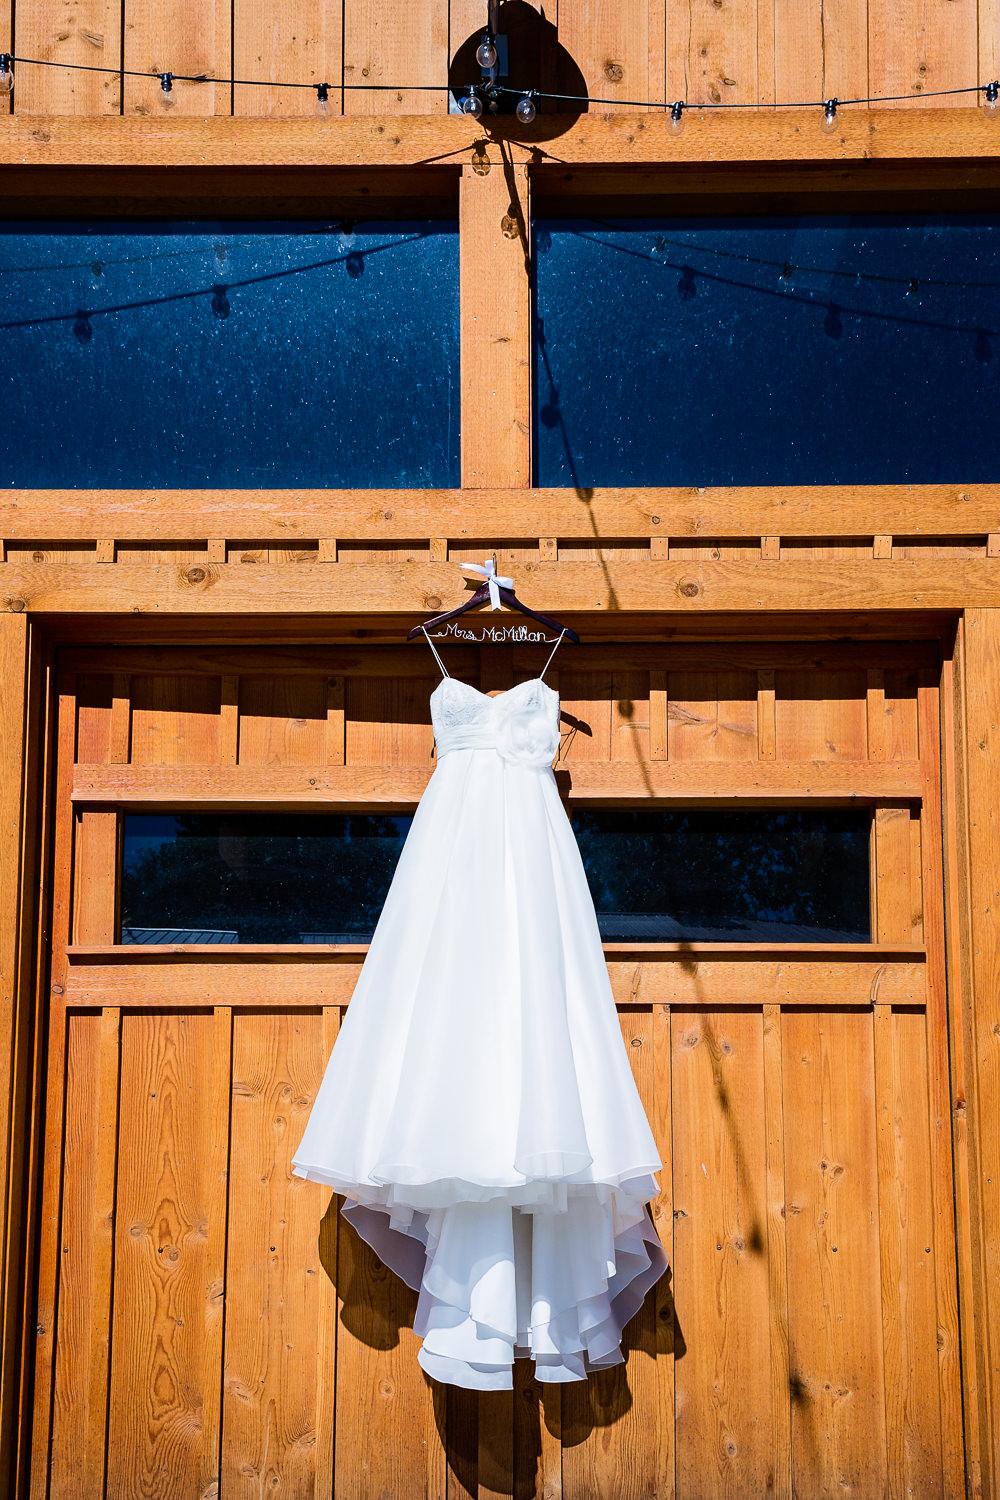 billings-montana-swift-river-ranch-wedding-dress.jpg